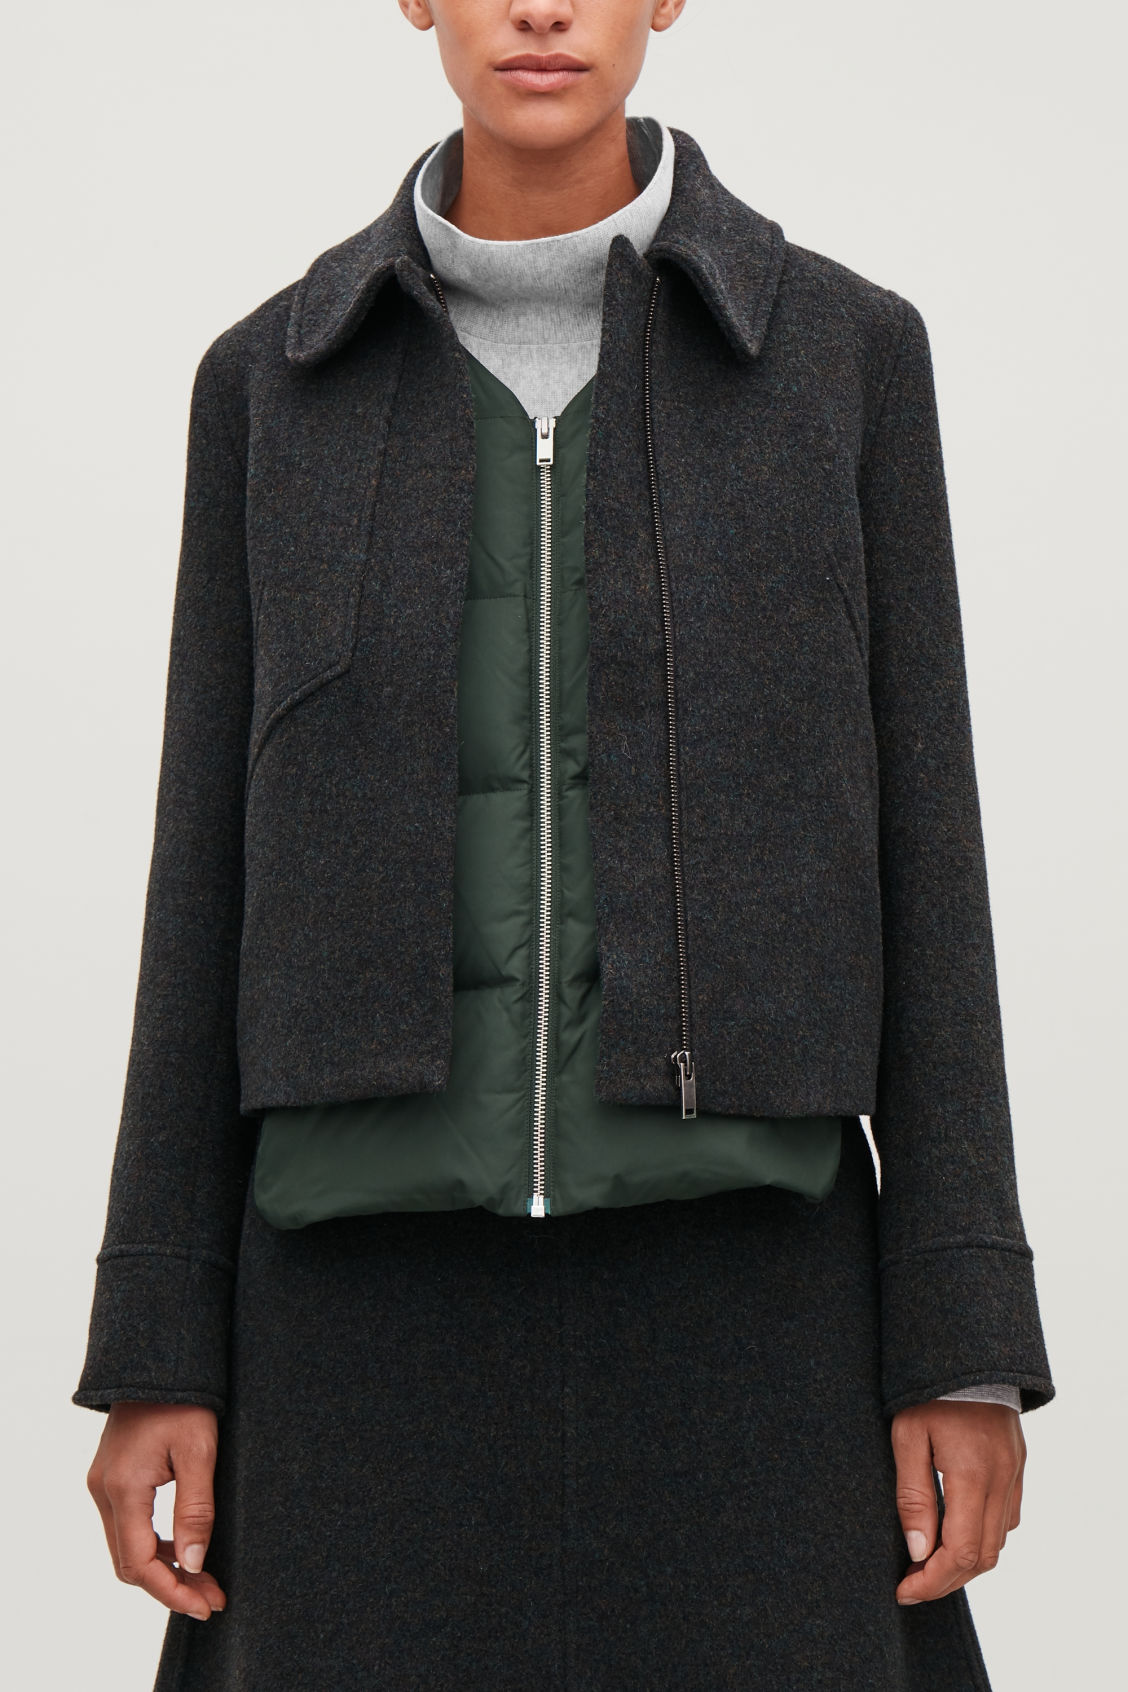 Detailed image of Cos v-neck padded gilet  in green